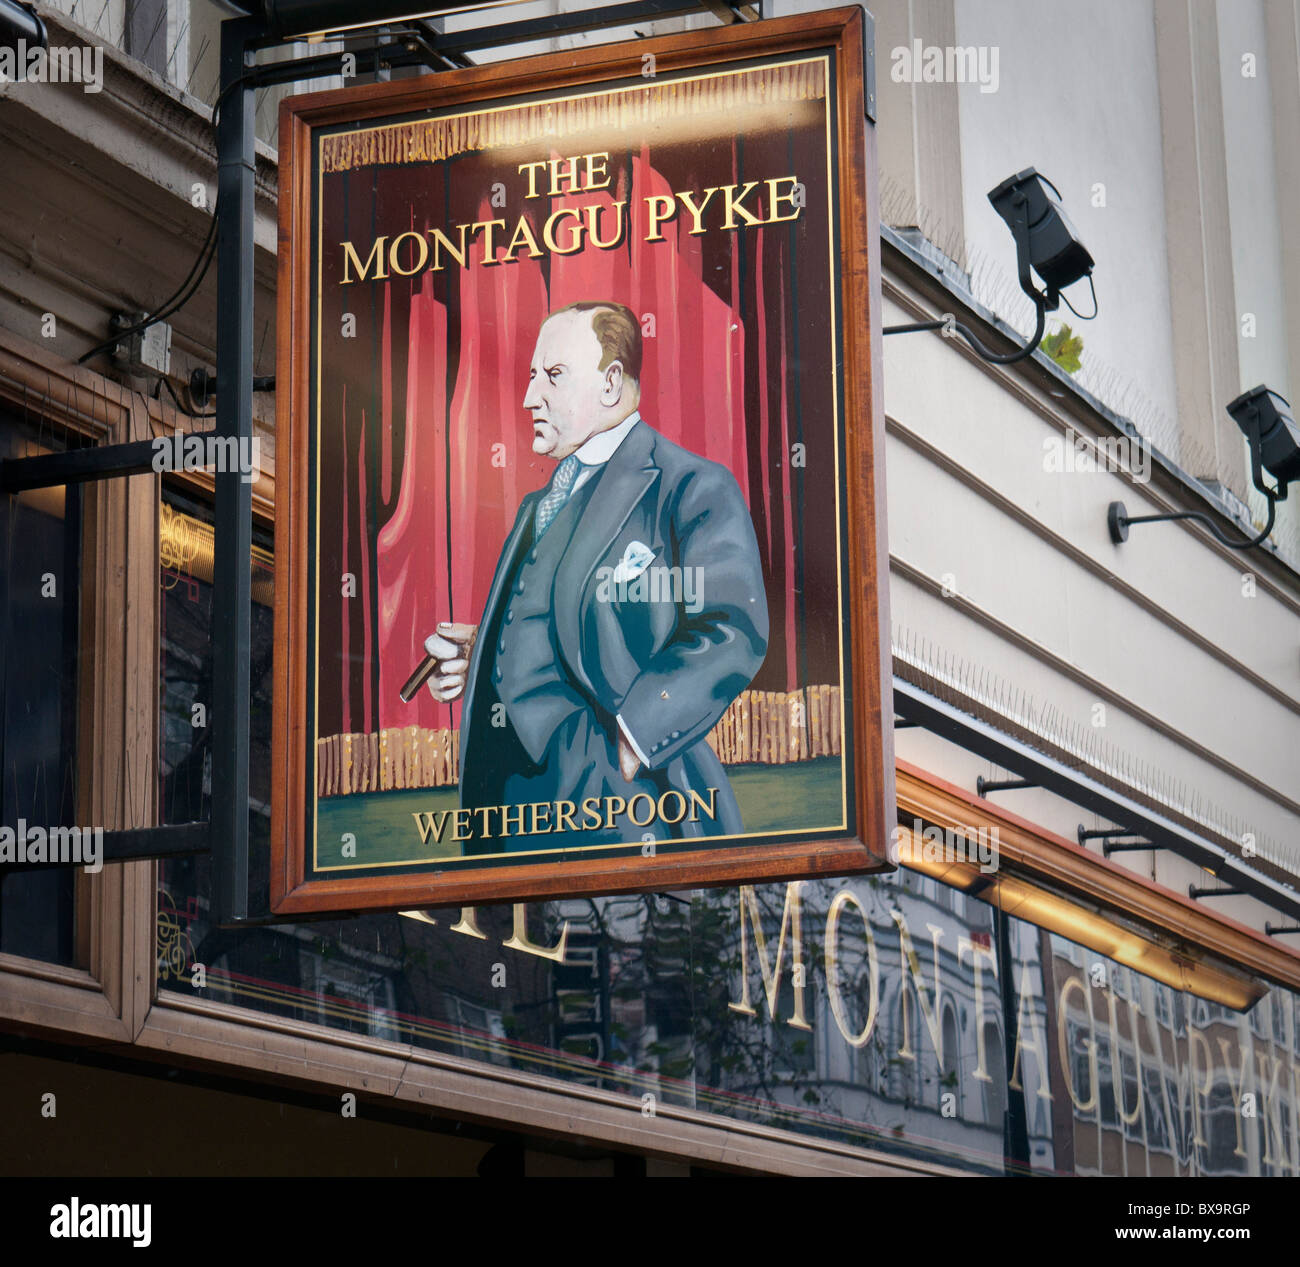 The Montagu Pyke Wetherspoon pub on Charing Cross Road formerly known as the Marquee club in London Britain - Stock Image